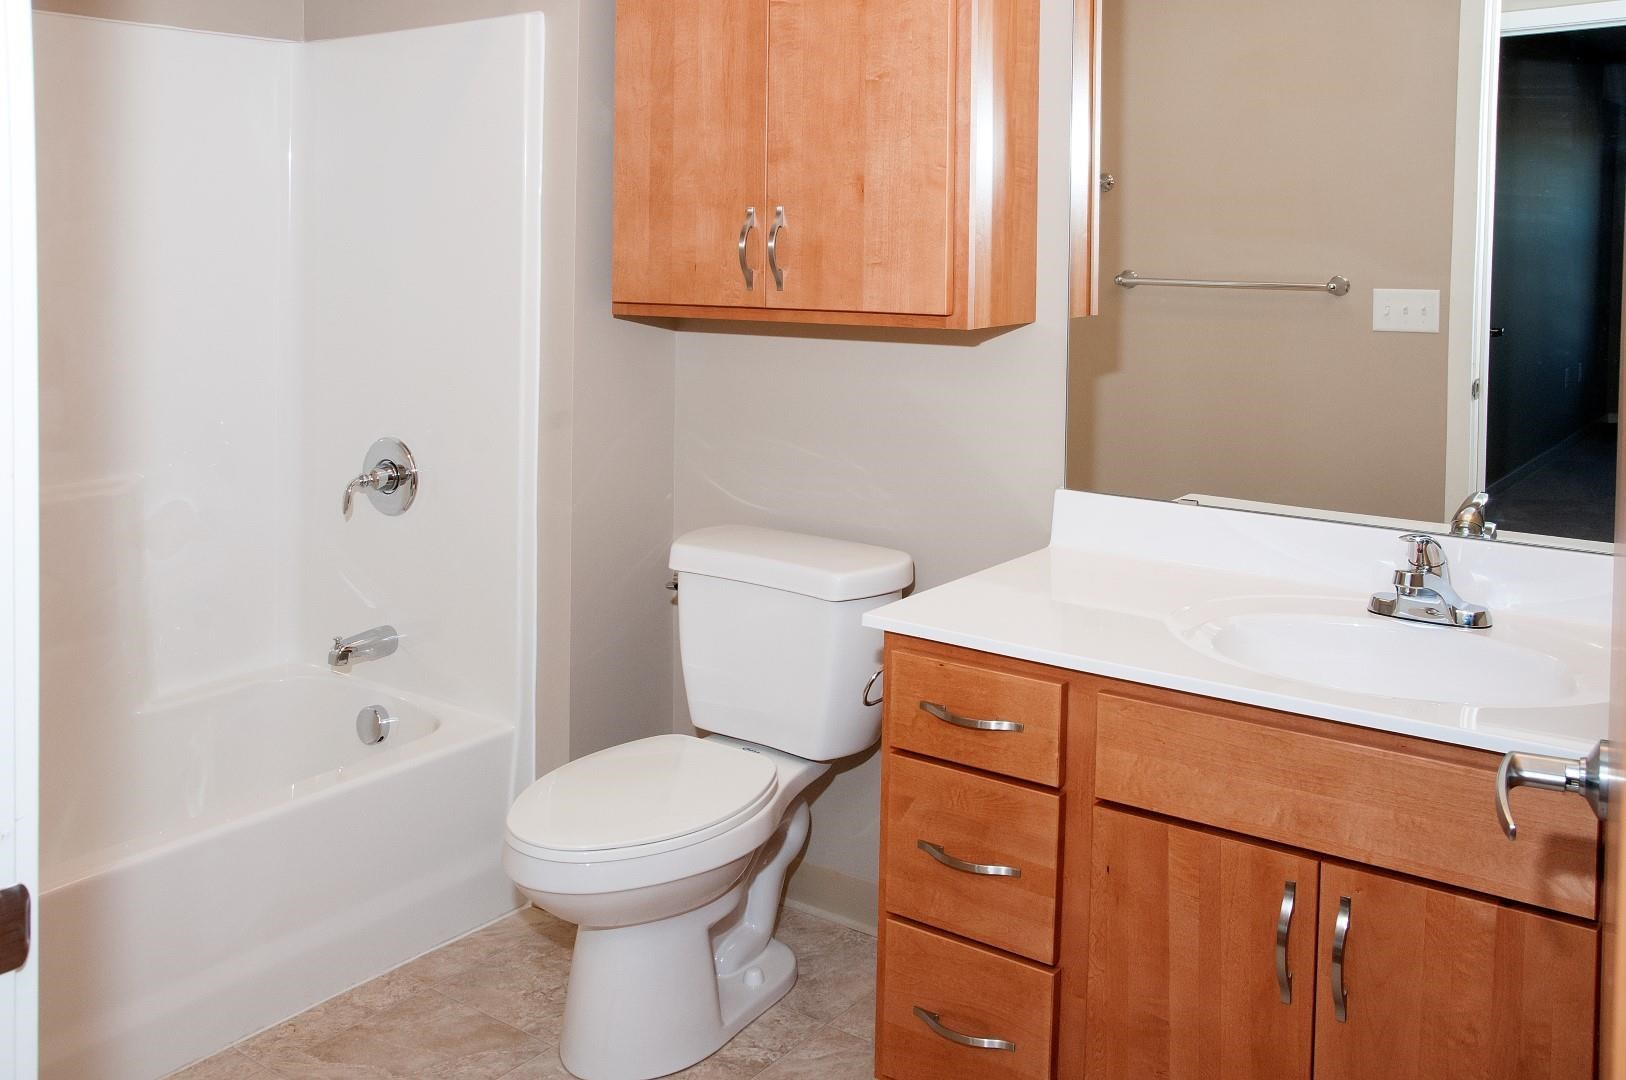 Carver Crossing Apartments Bathroom with Ample Storage with Wood Cabinetry